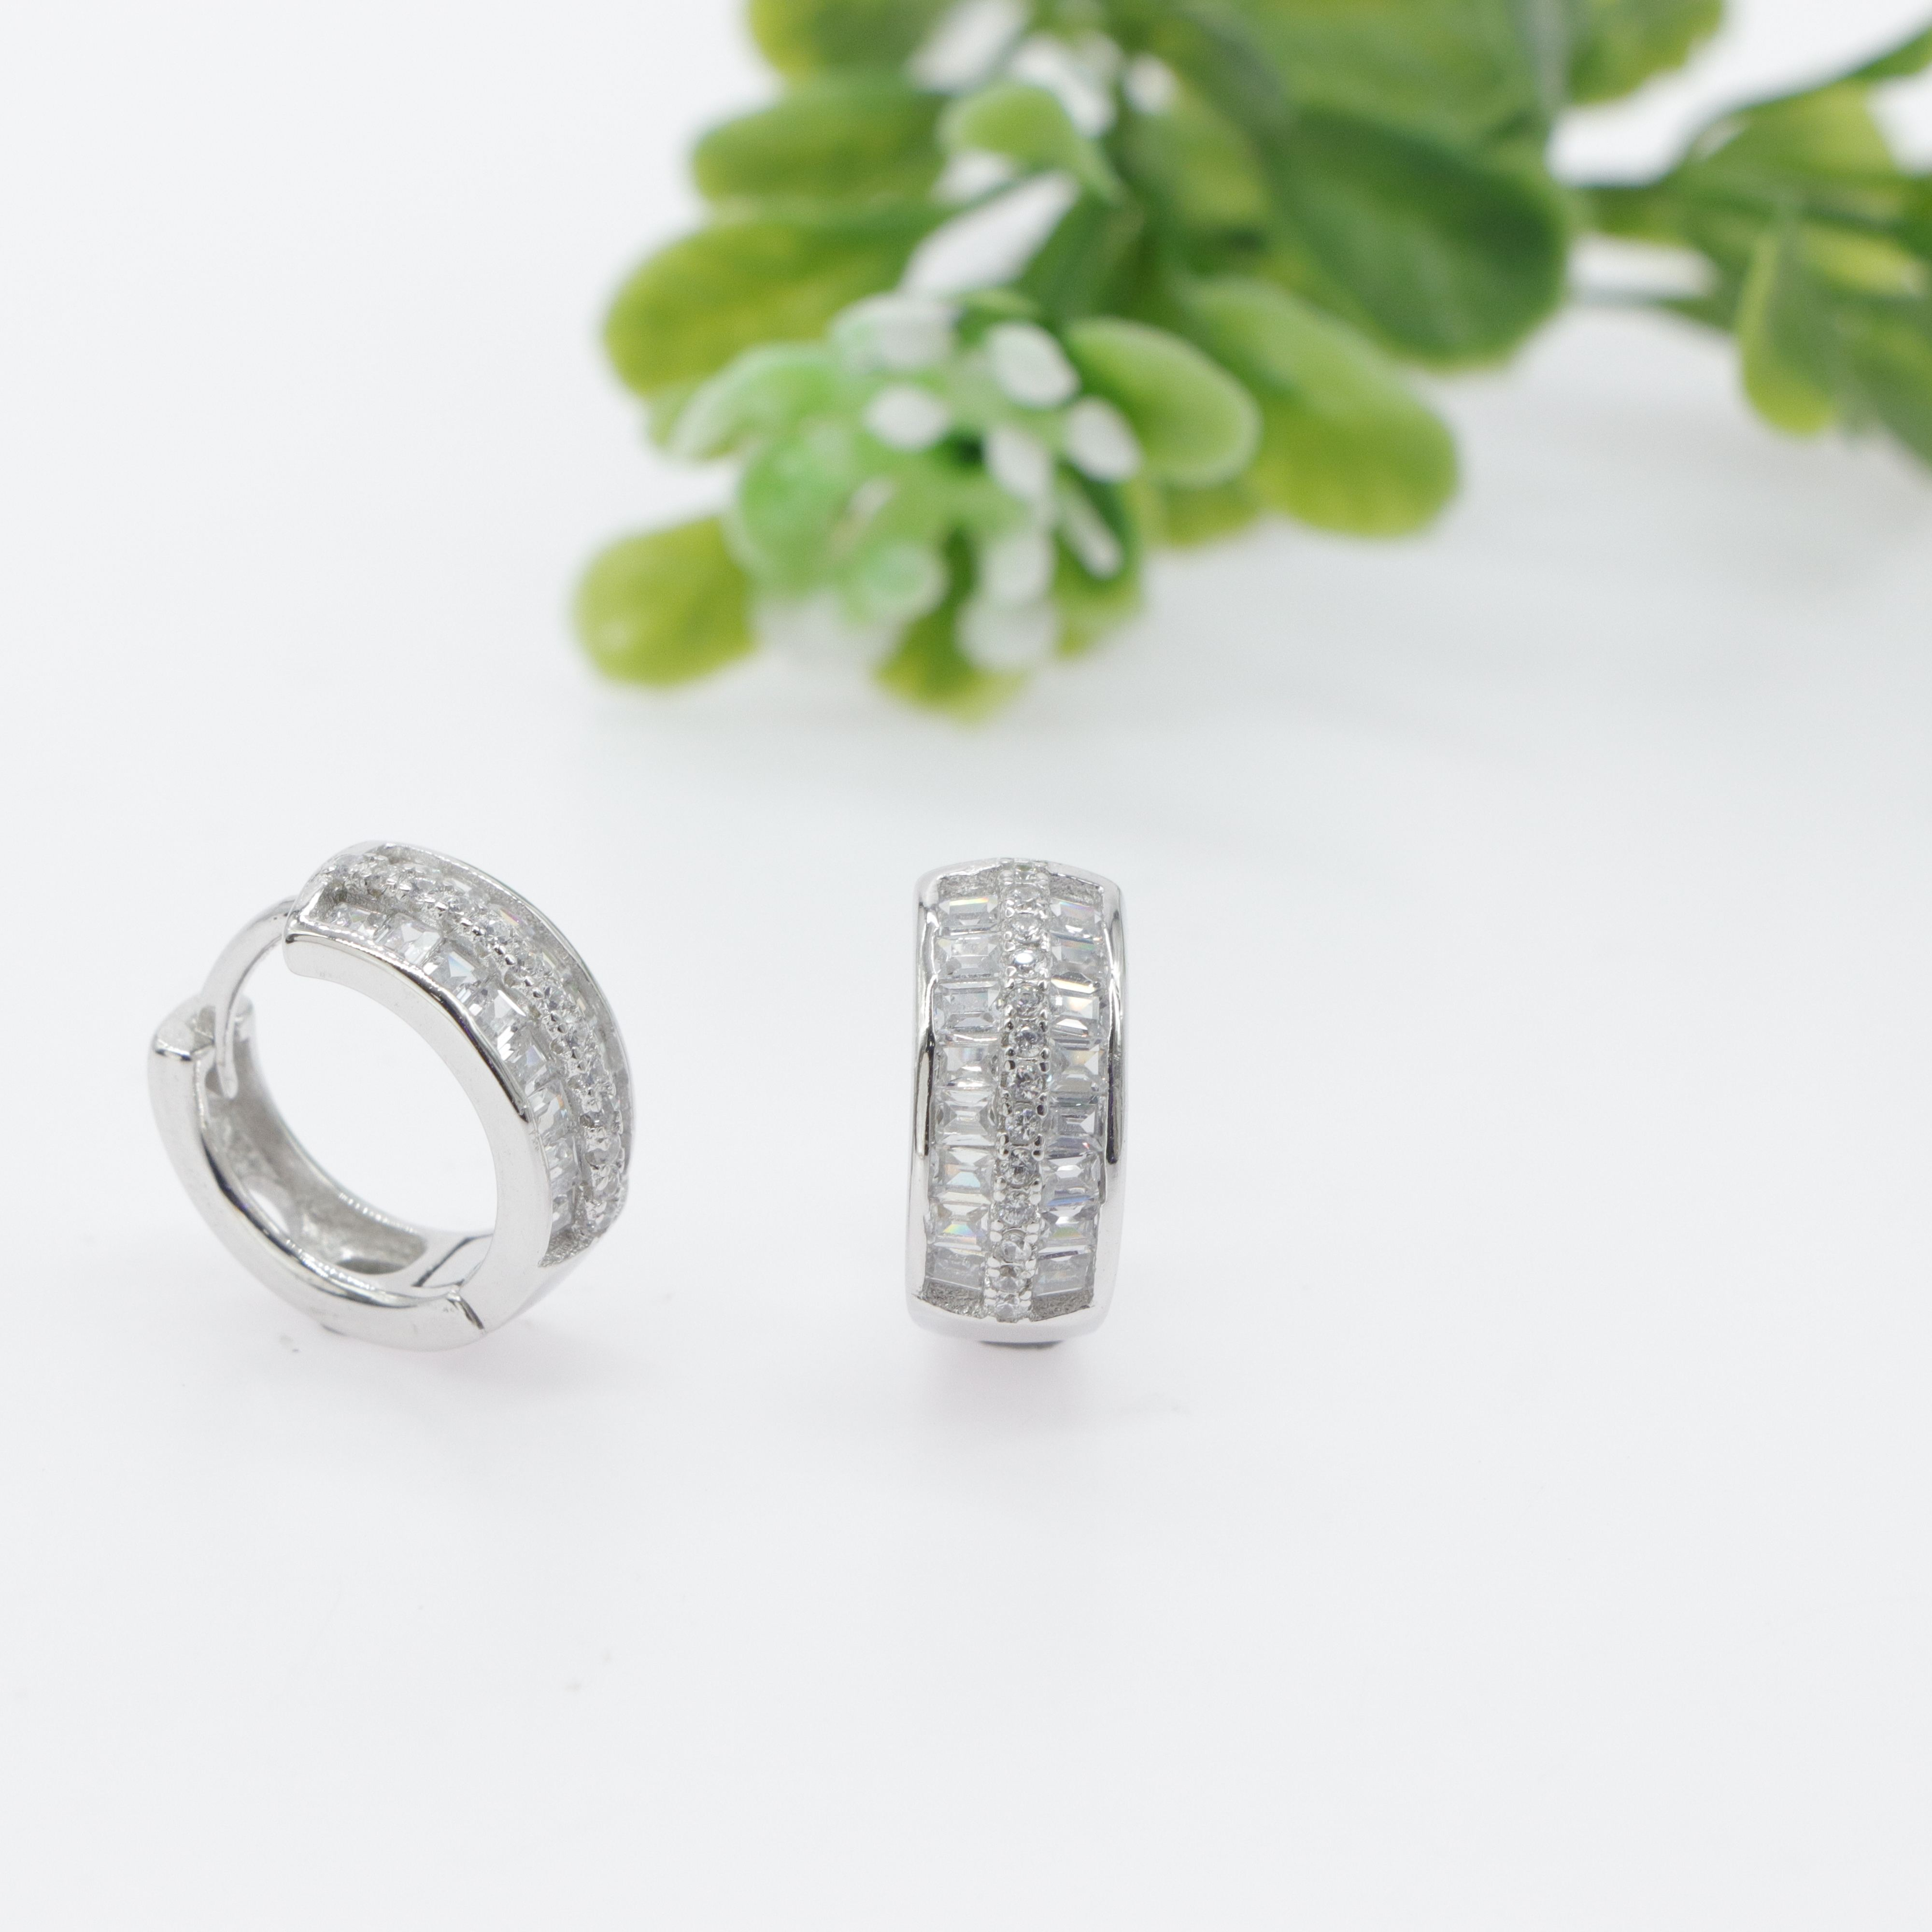 Durable Quality China supplier Fashionable Diamond Hoop Earrings Platinum Plating Gift